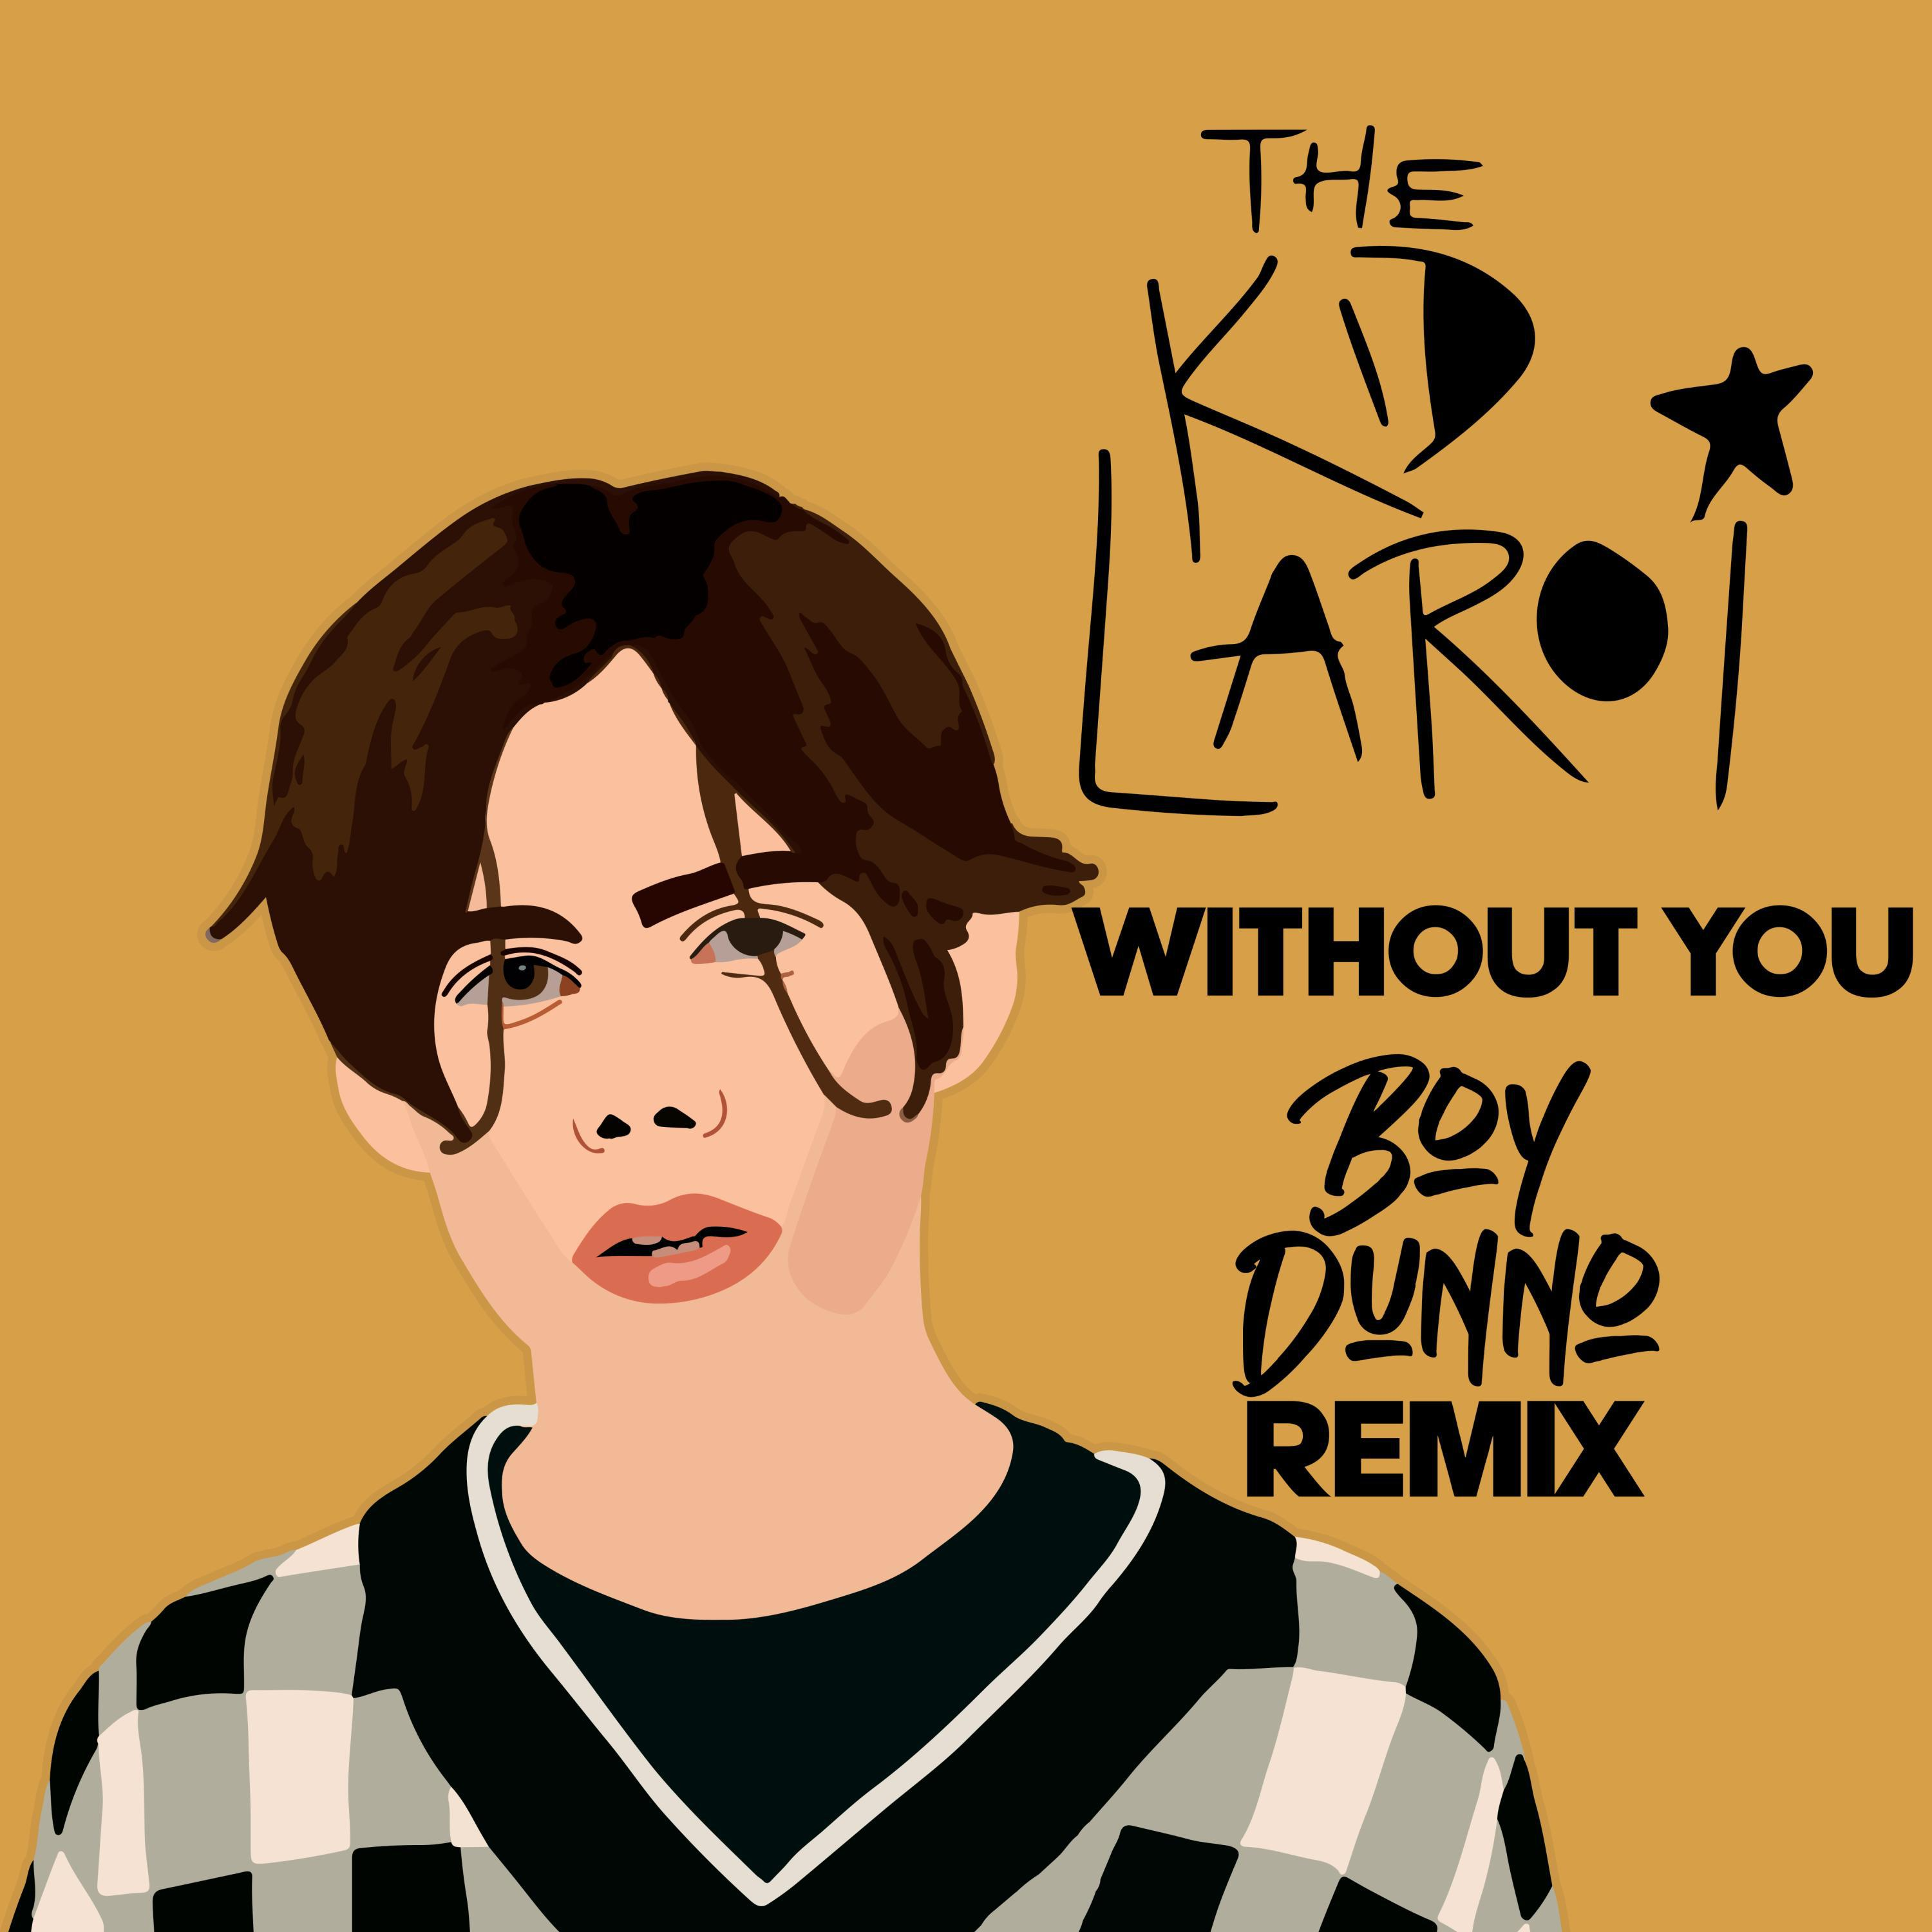 Without You (Boy Dunno Remix)